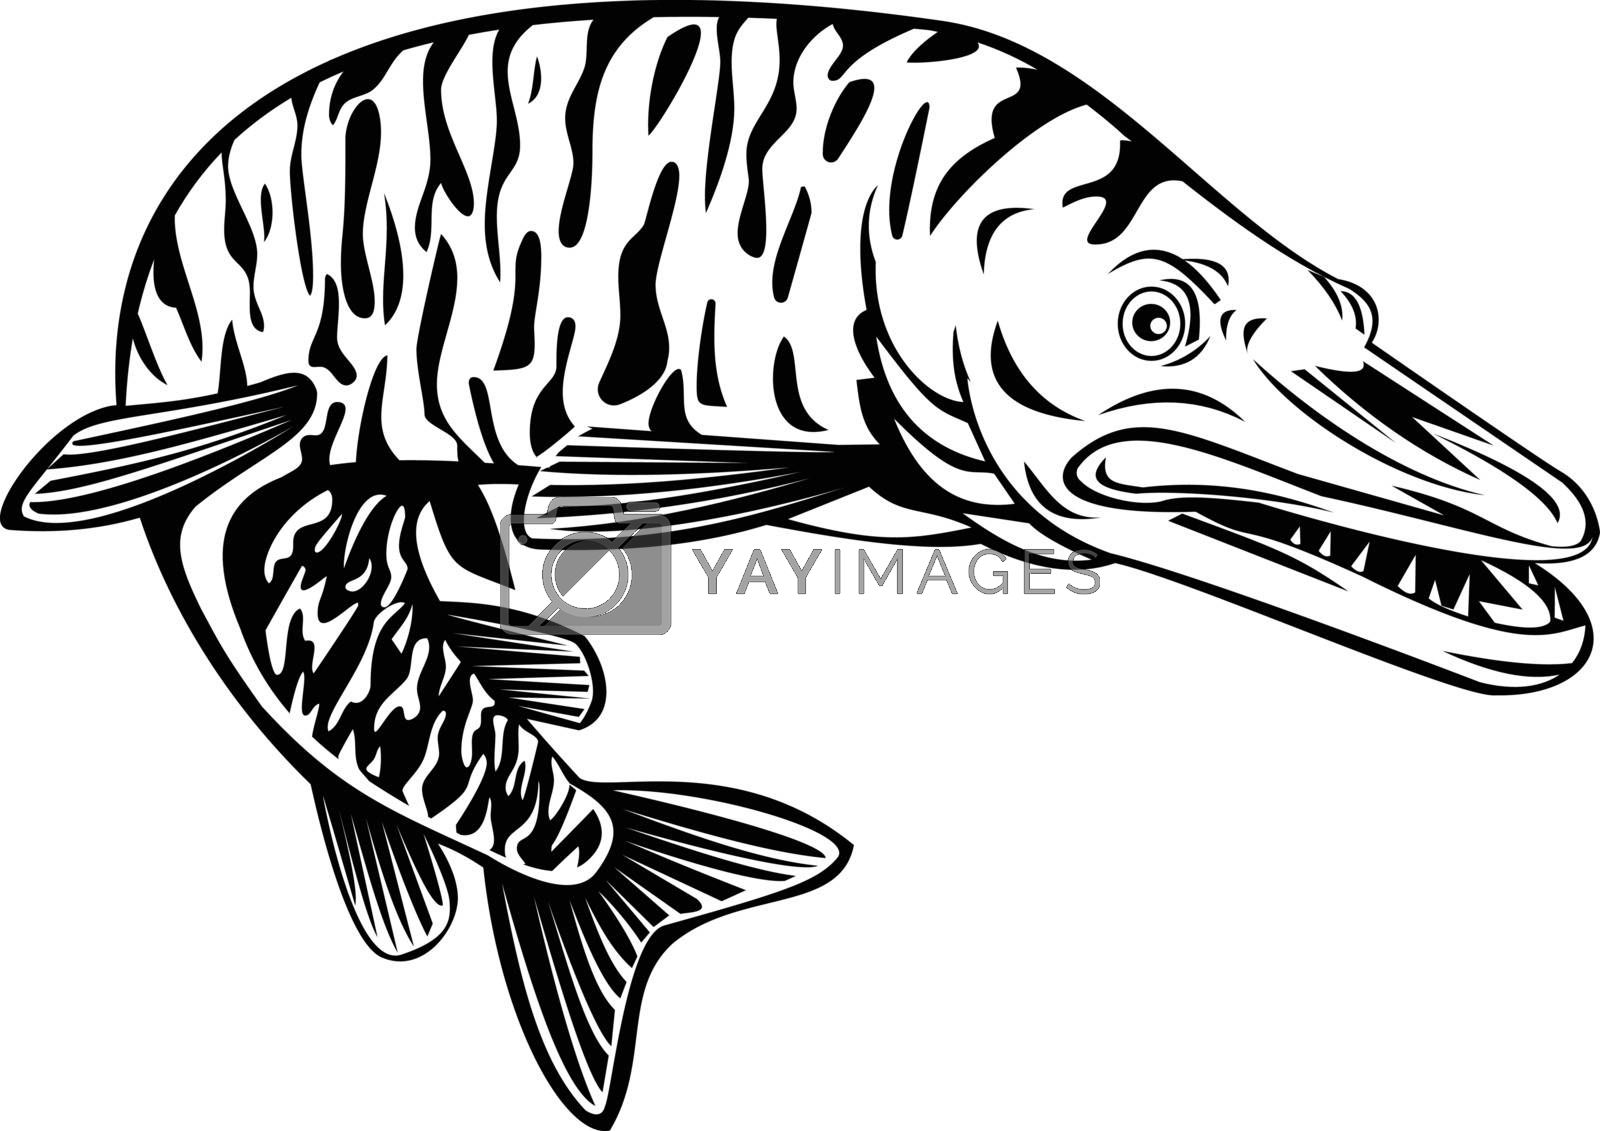 Retro style illustration of a  tiger muskellunge, Esox masquinongy, tiger muskie, a carnivorous fish hybrid offspring of true muskellunge and northern pike on isolated background in black and white.